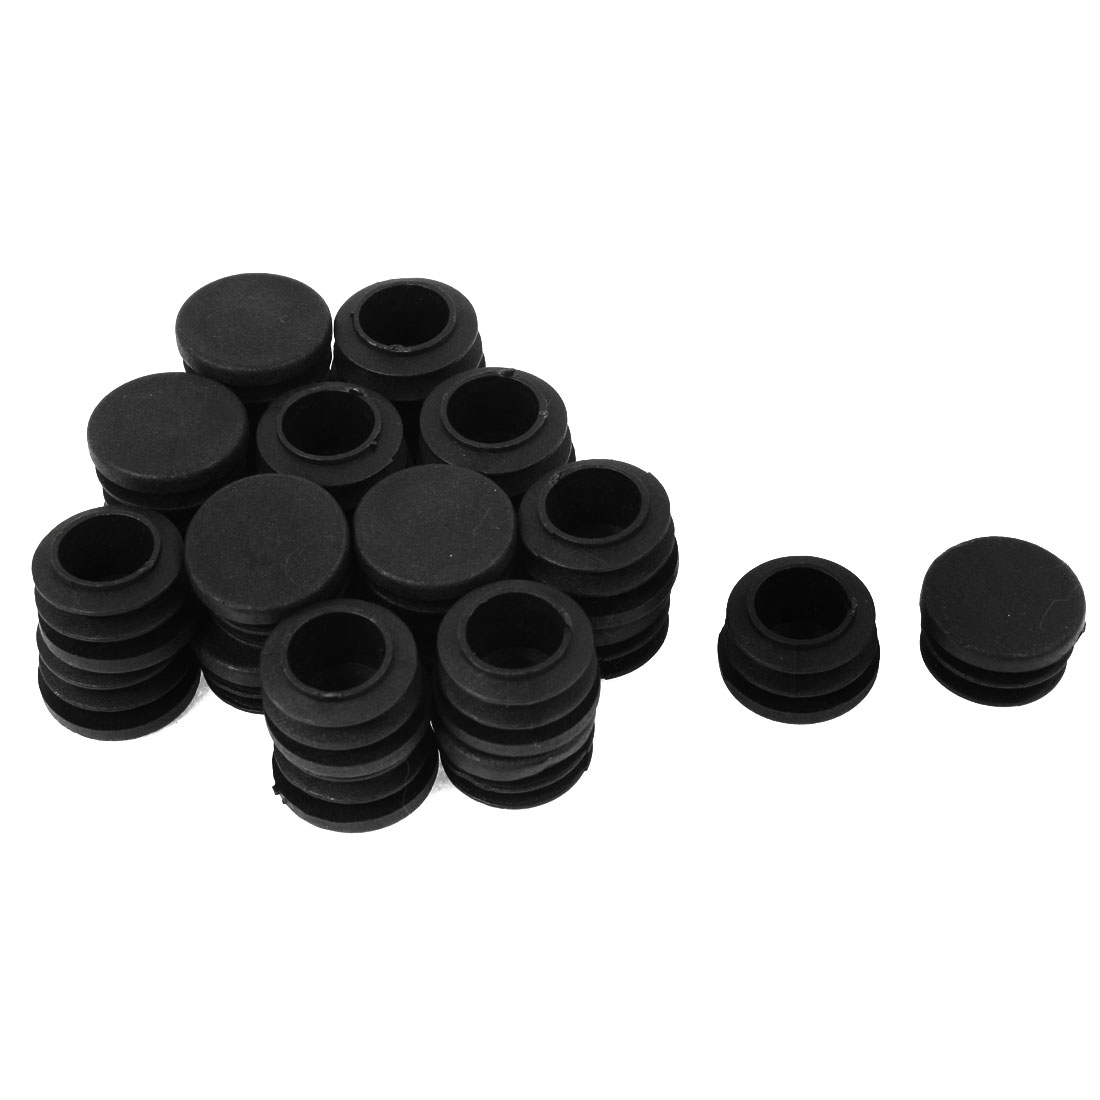 24Pcs 22mm Dia Ribbed Design Cap Cover Chair Insert Black for Round Tube